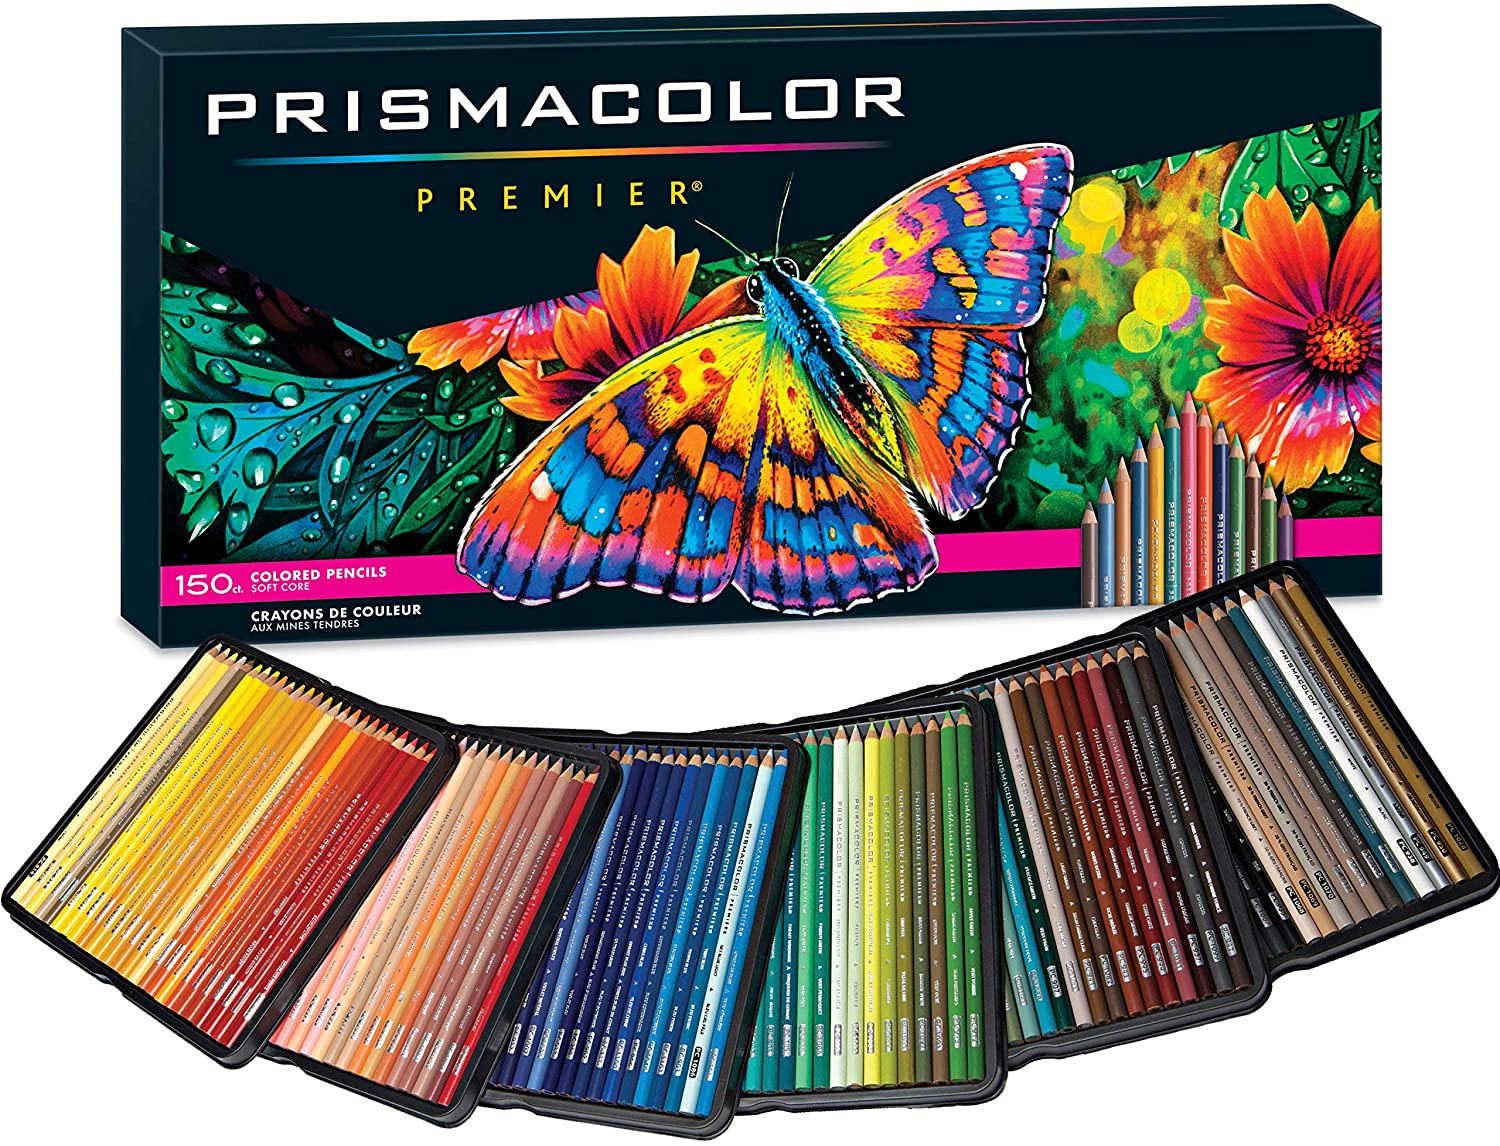 150pc Premier Prismacolor Pencils